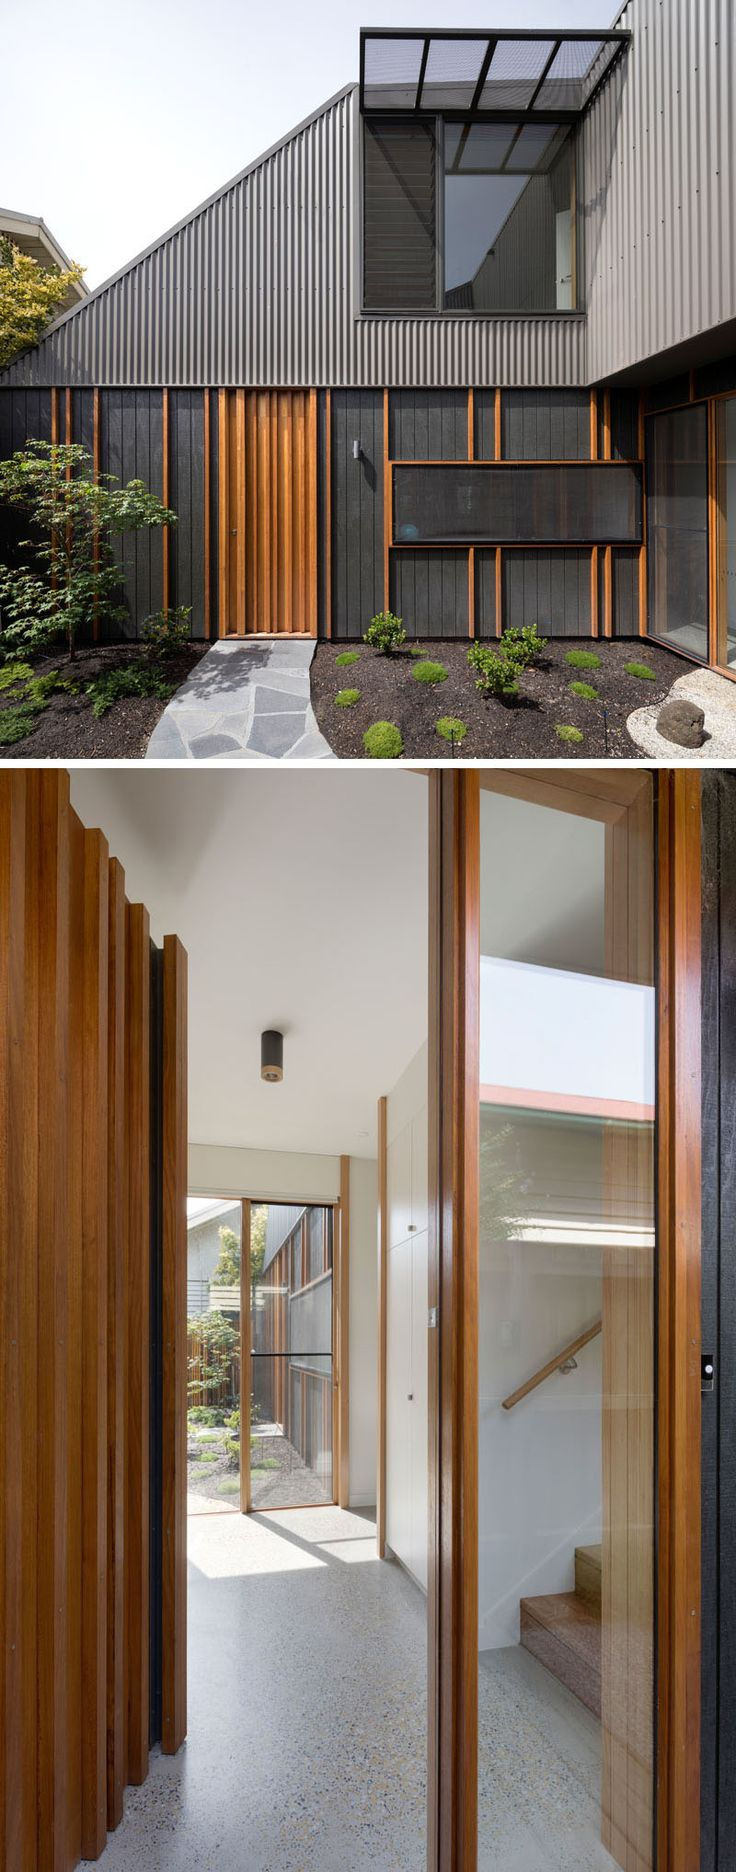 This modern house has hardwood battens that conceal joints in the cladding add texture to the facade, and allow the front door to blend in with the exterior. #ModernHouse #WoodFrontDoor #HouseDesign #Architecture